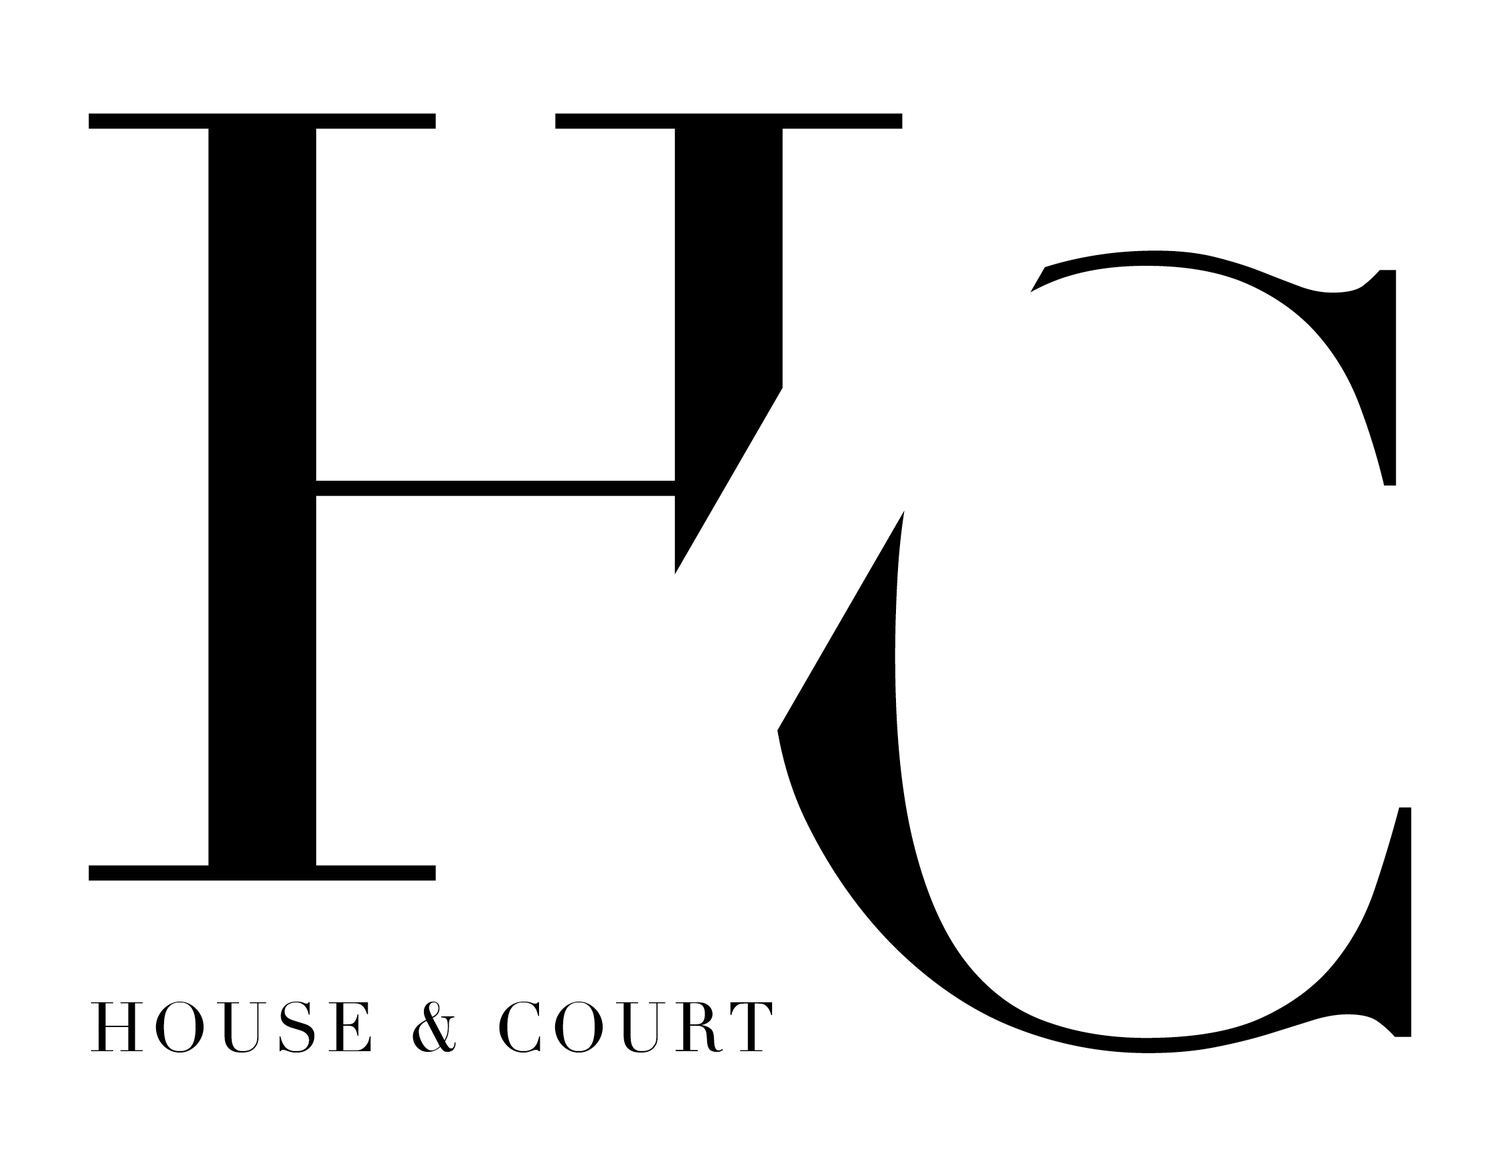 House & Court